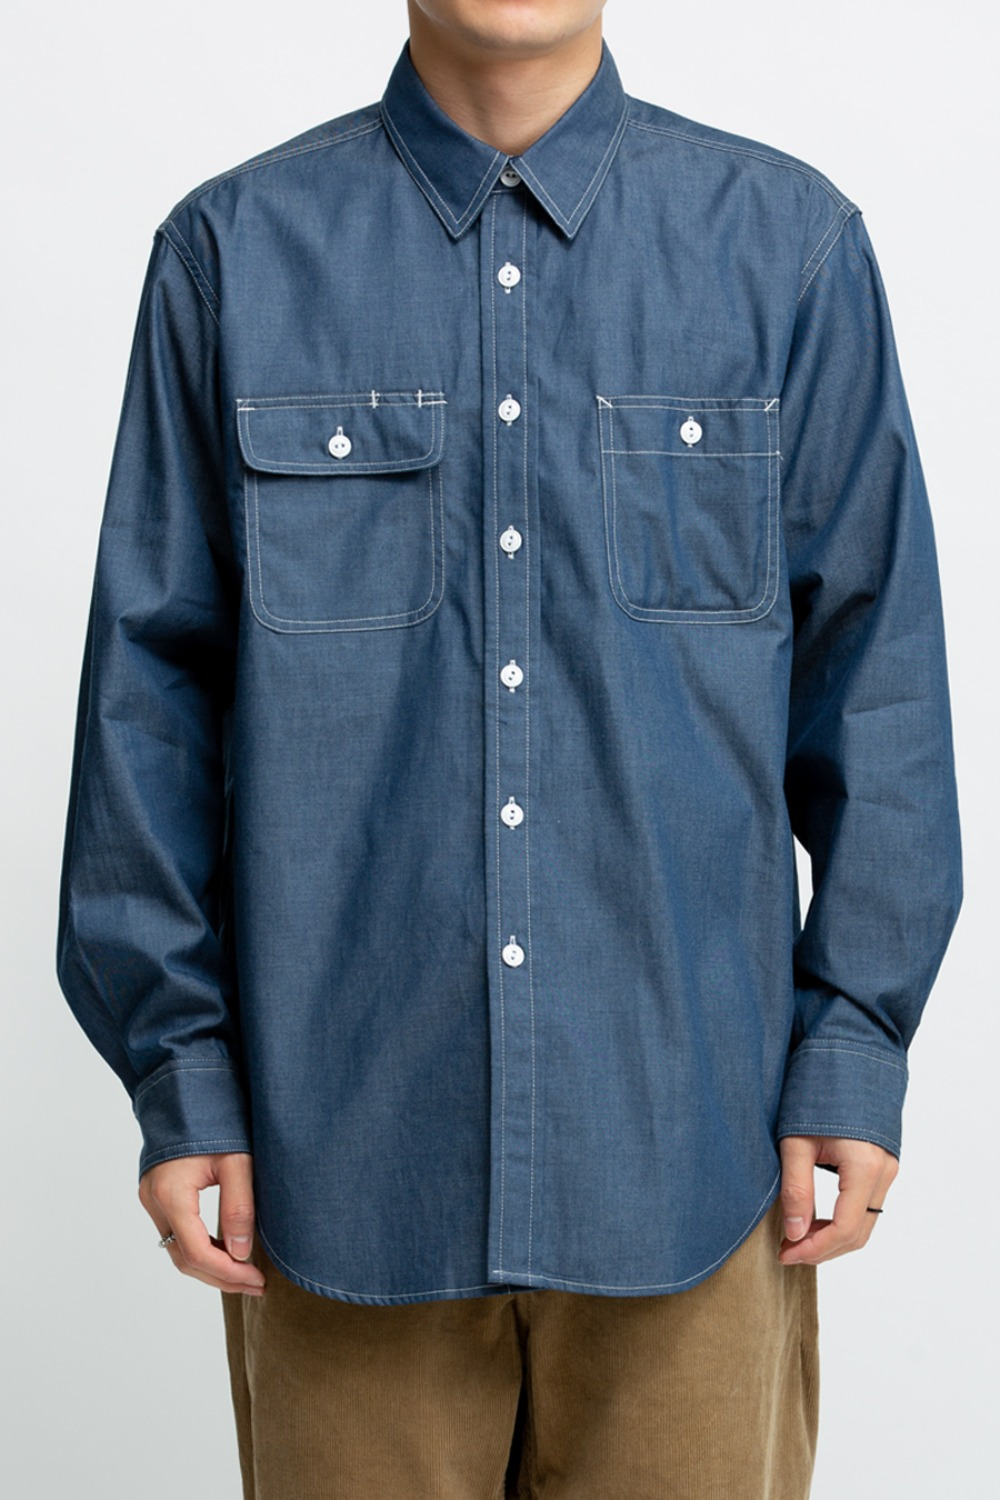 UTILITY SHIRT NAVY LIGHT WEIGHT DENIM